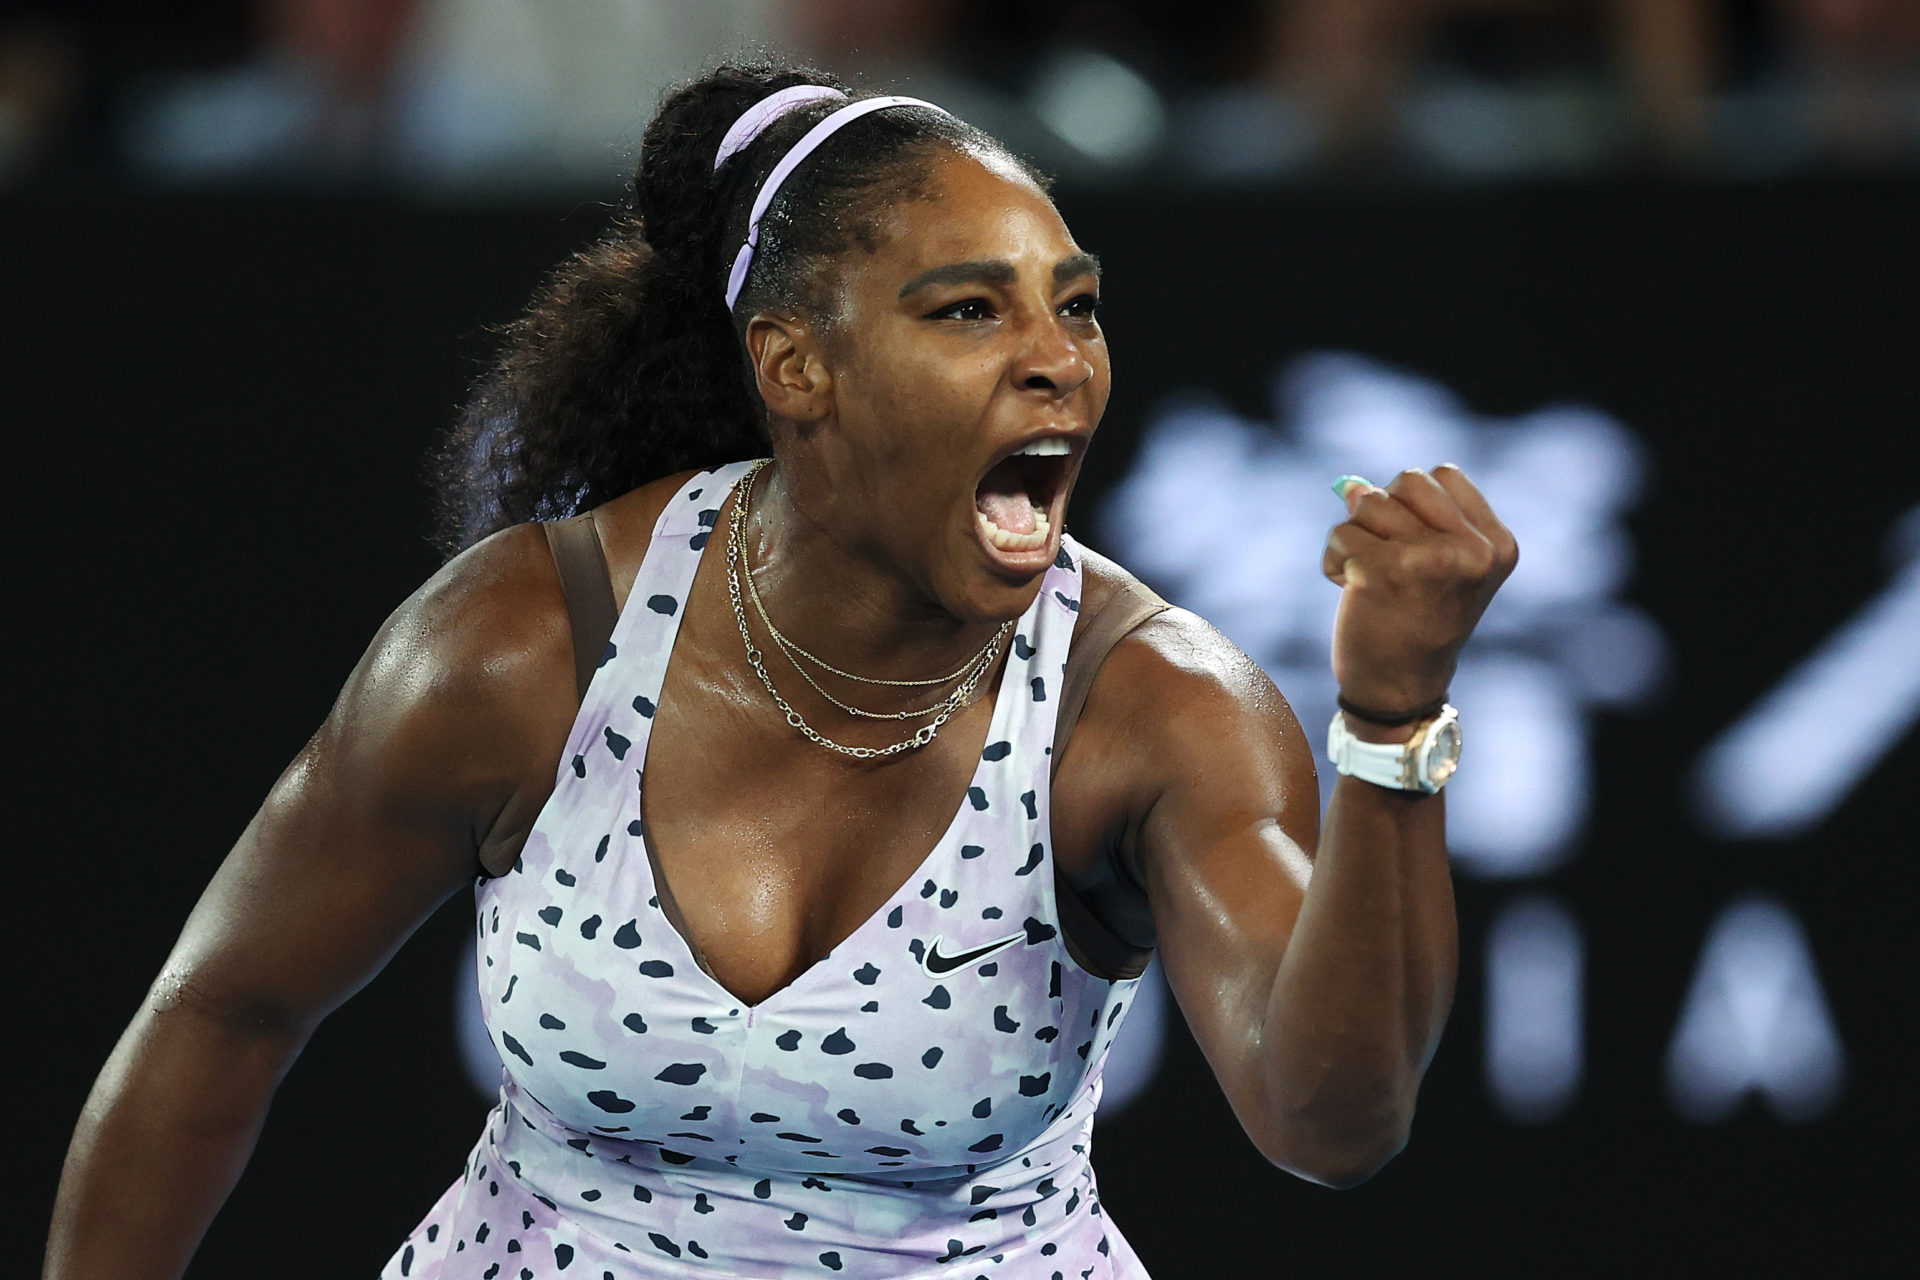 Serena Williams of the United States celebrates after winning a point during her Women's Singles second round match against Tamara Zidansek of Slovenia on day three of the 2020 Australian Open at Melbourne Park on in Melbourne, Australia.